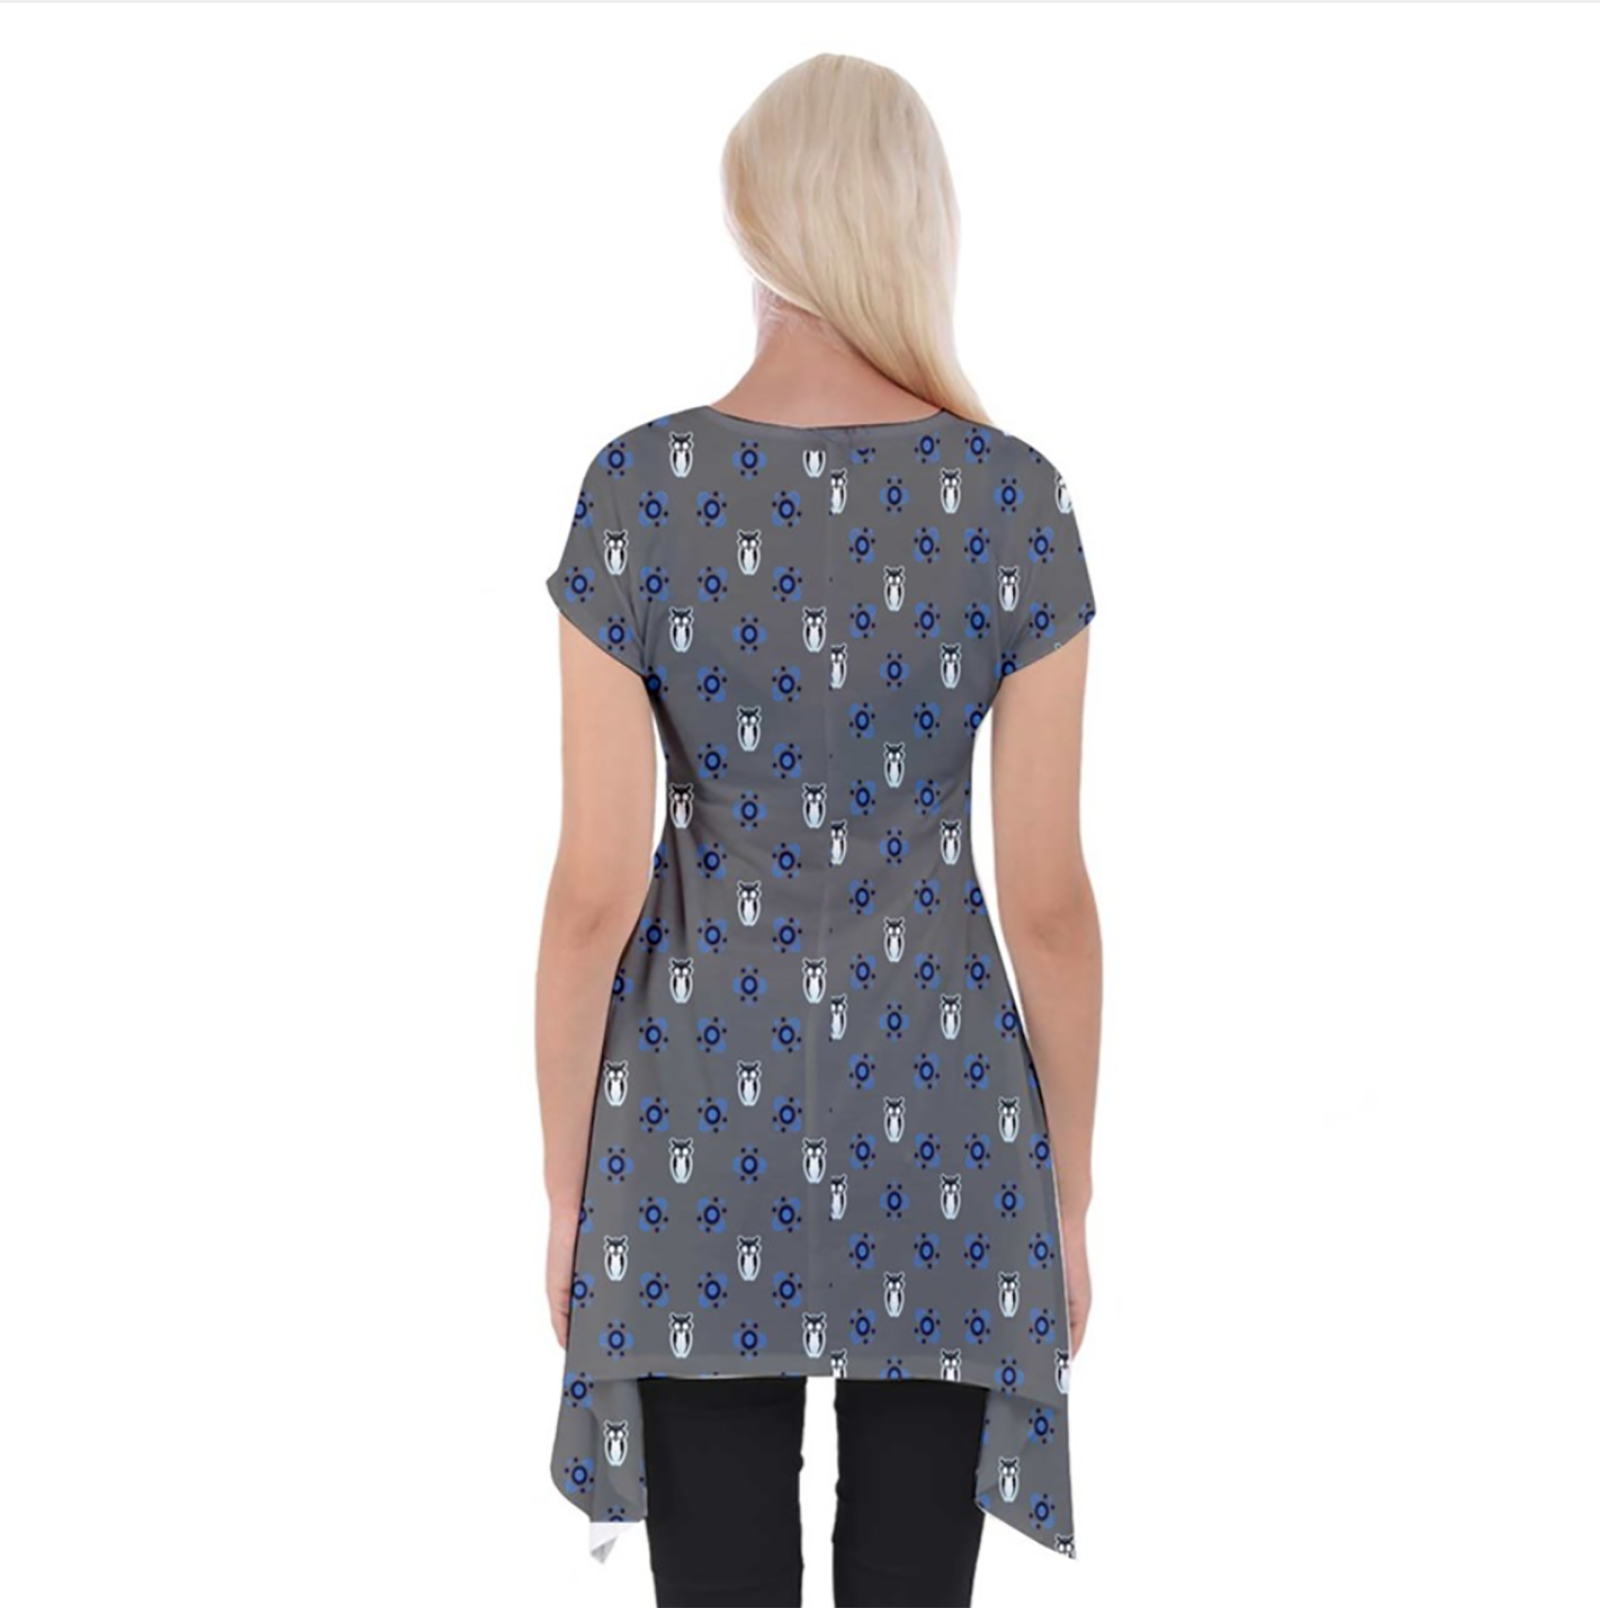 Blue/gray Pattern Women's Short Sleeve Side Drop Tunic - Inspired by Ravenclaw